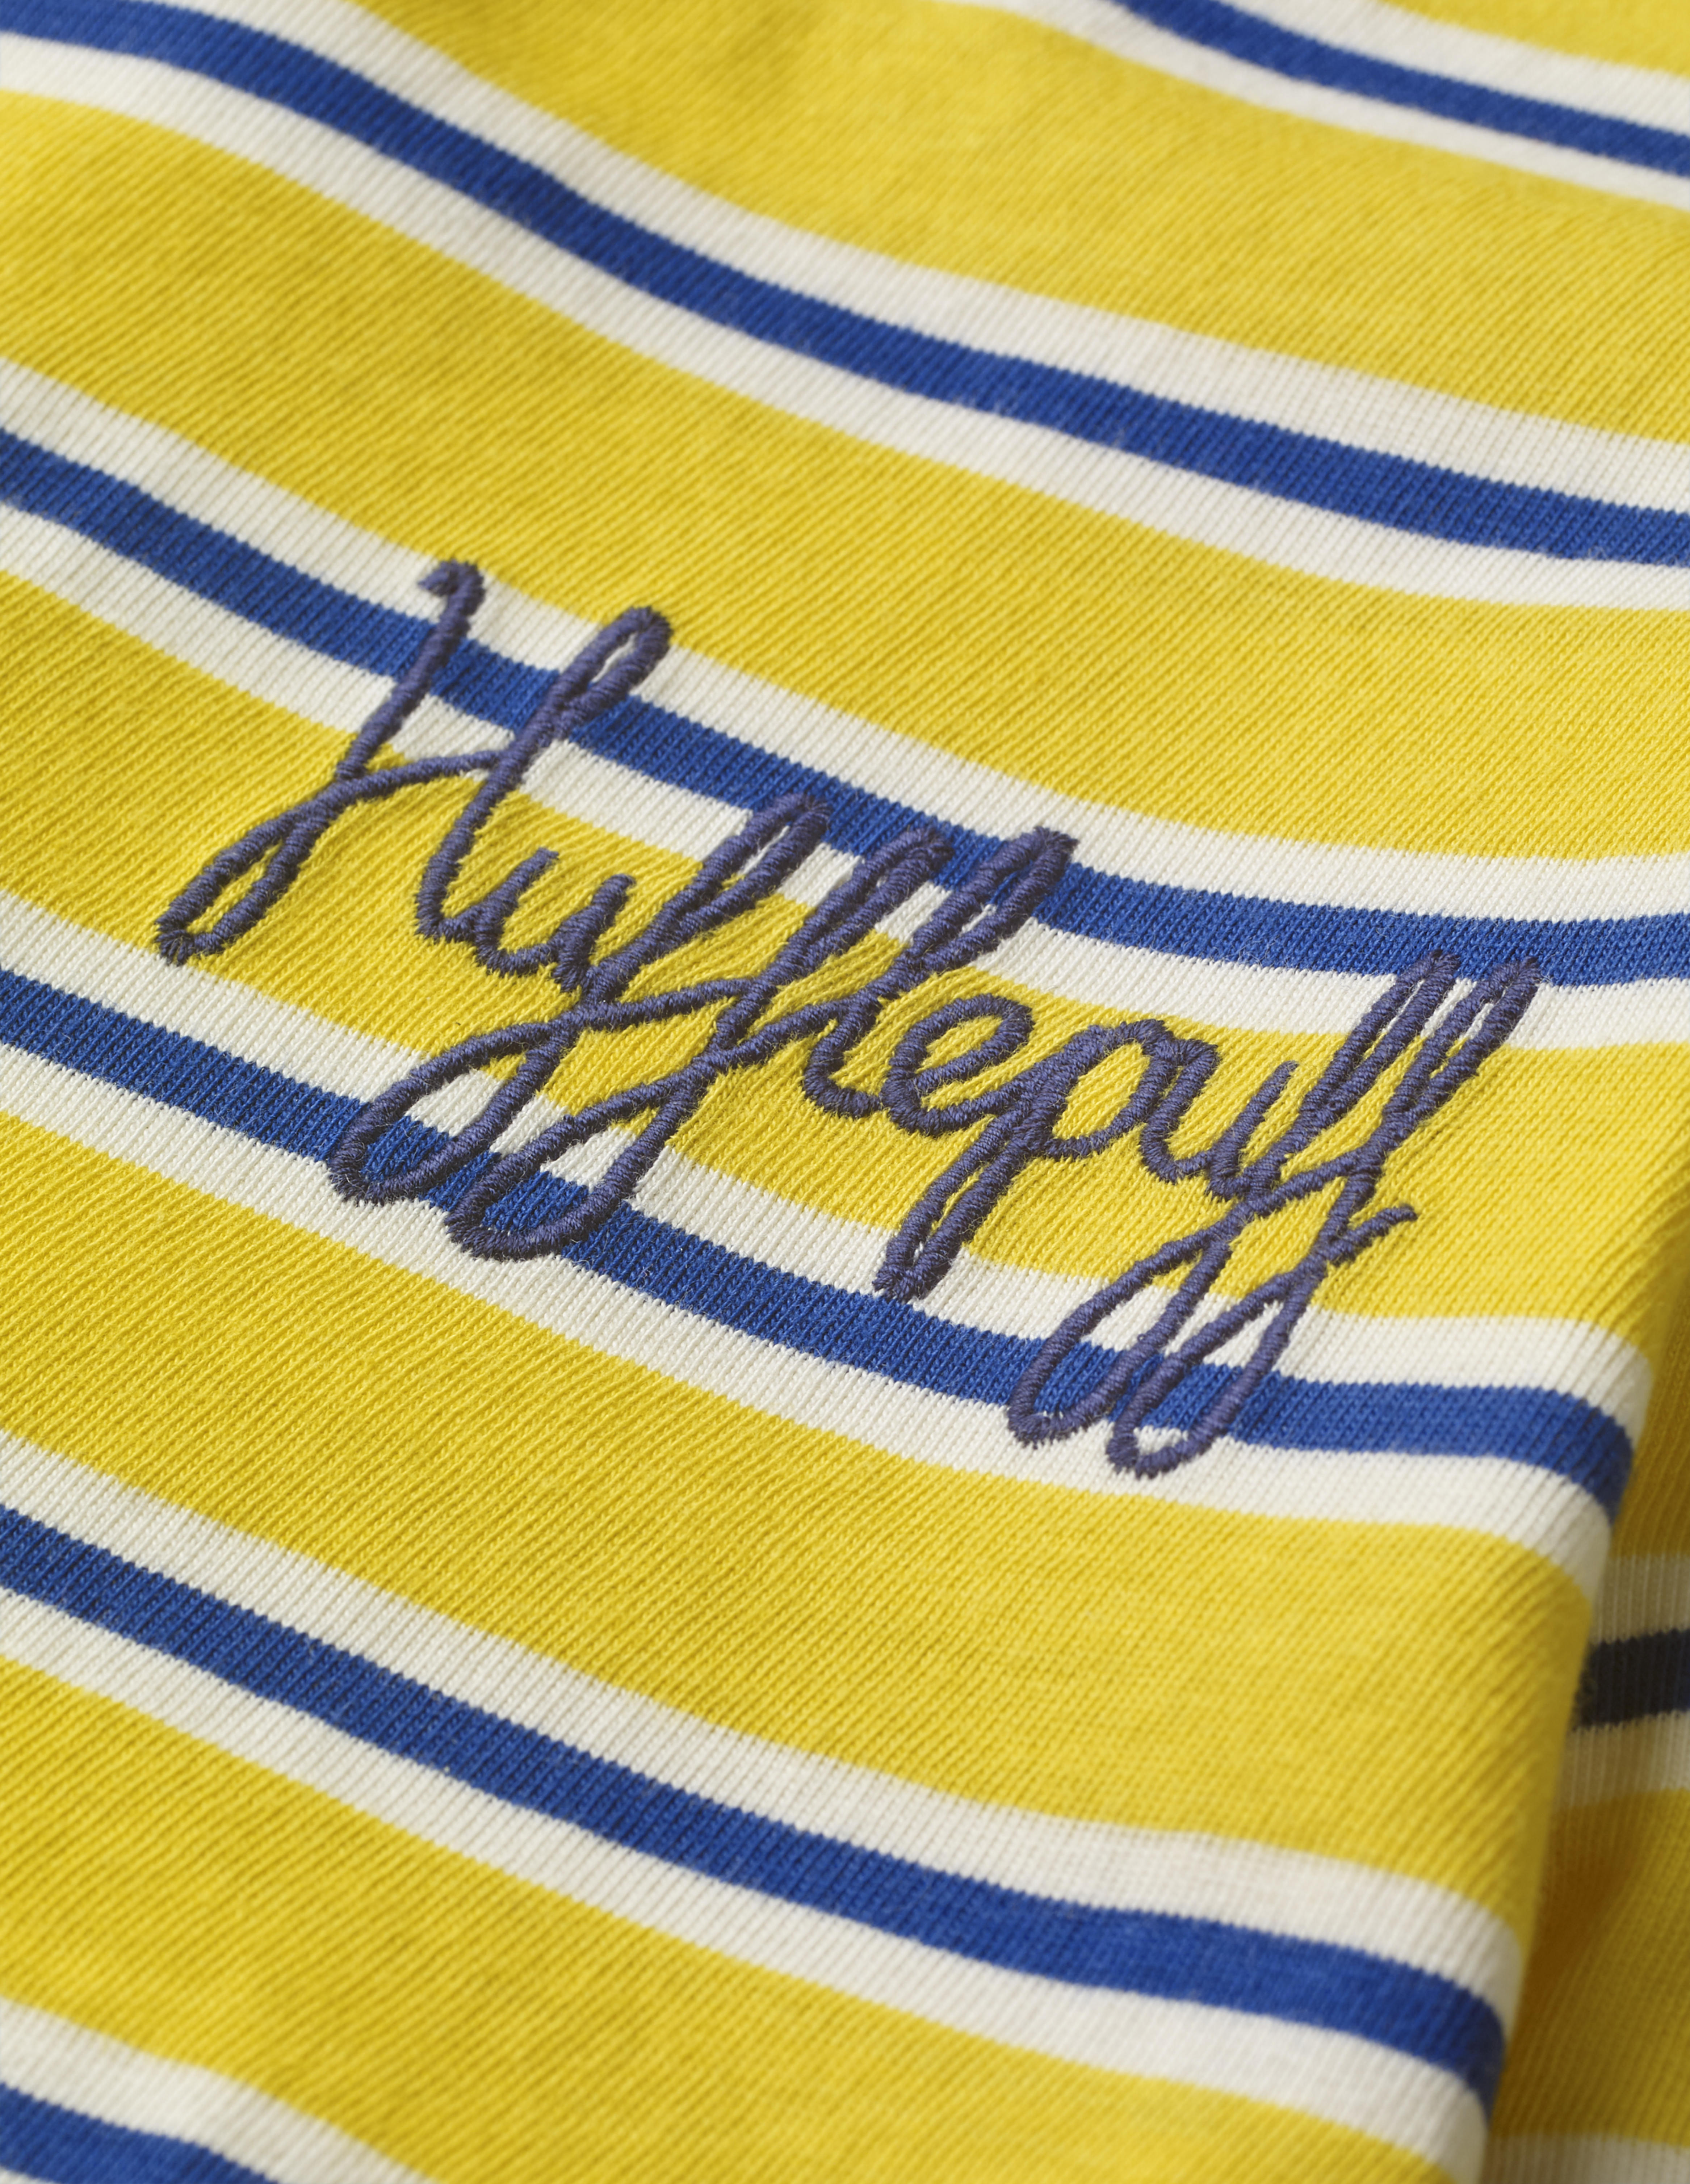 """This close-up of the Mini Boden House Breton in yellow better shows the word """"Hufflepuff"""" written in navy blue script in the front pocket area. It retails between £20 and £22."""